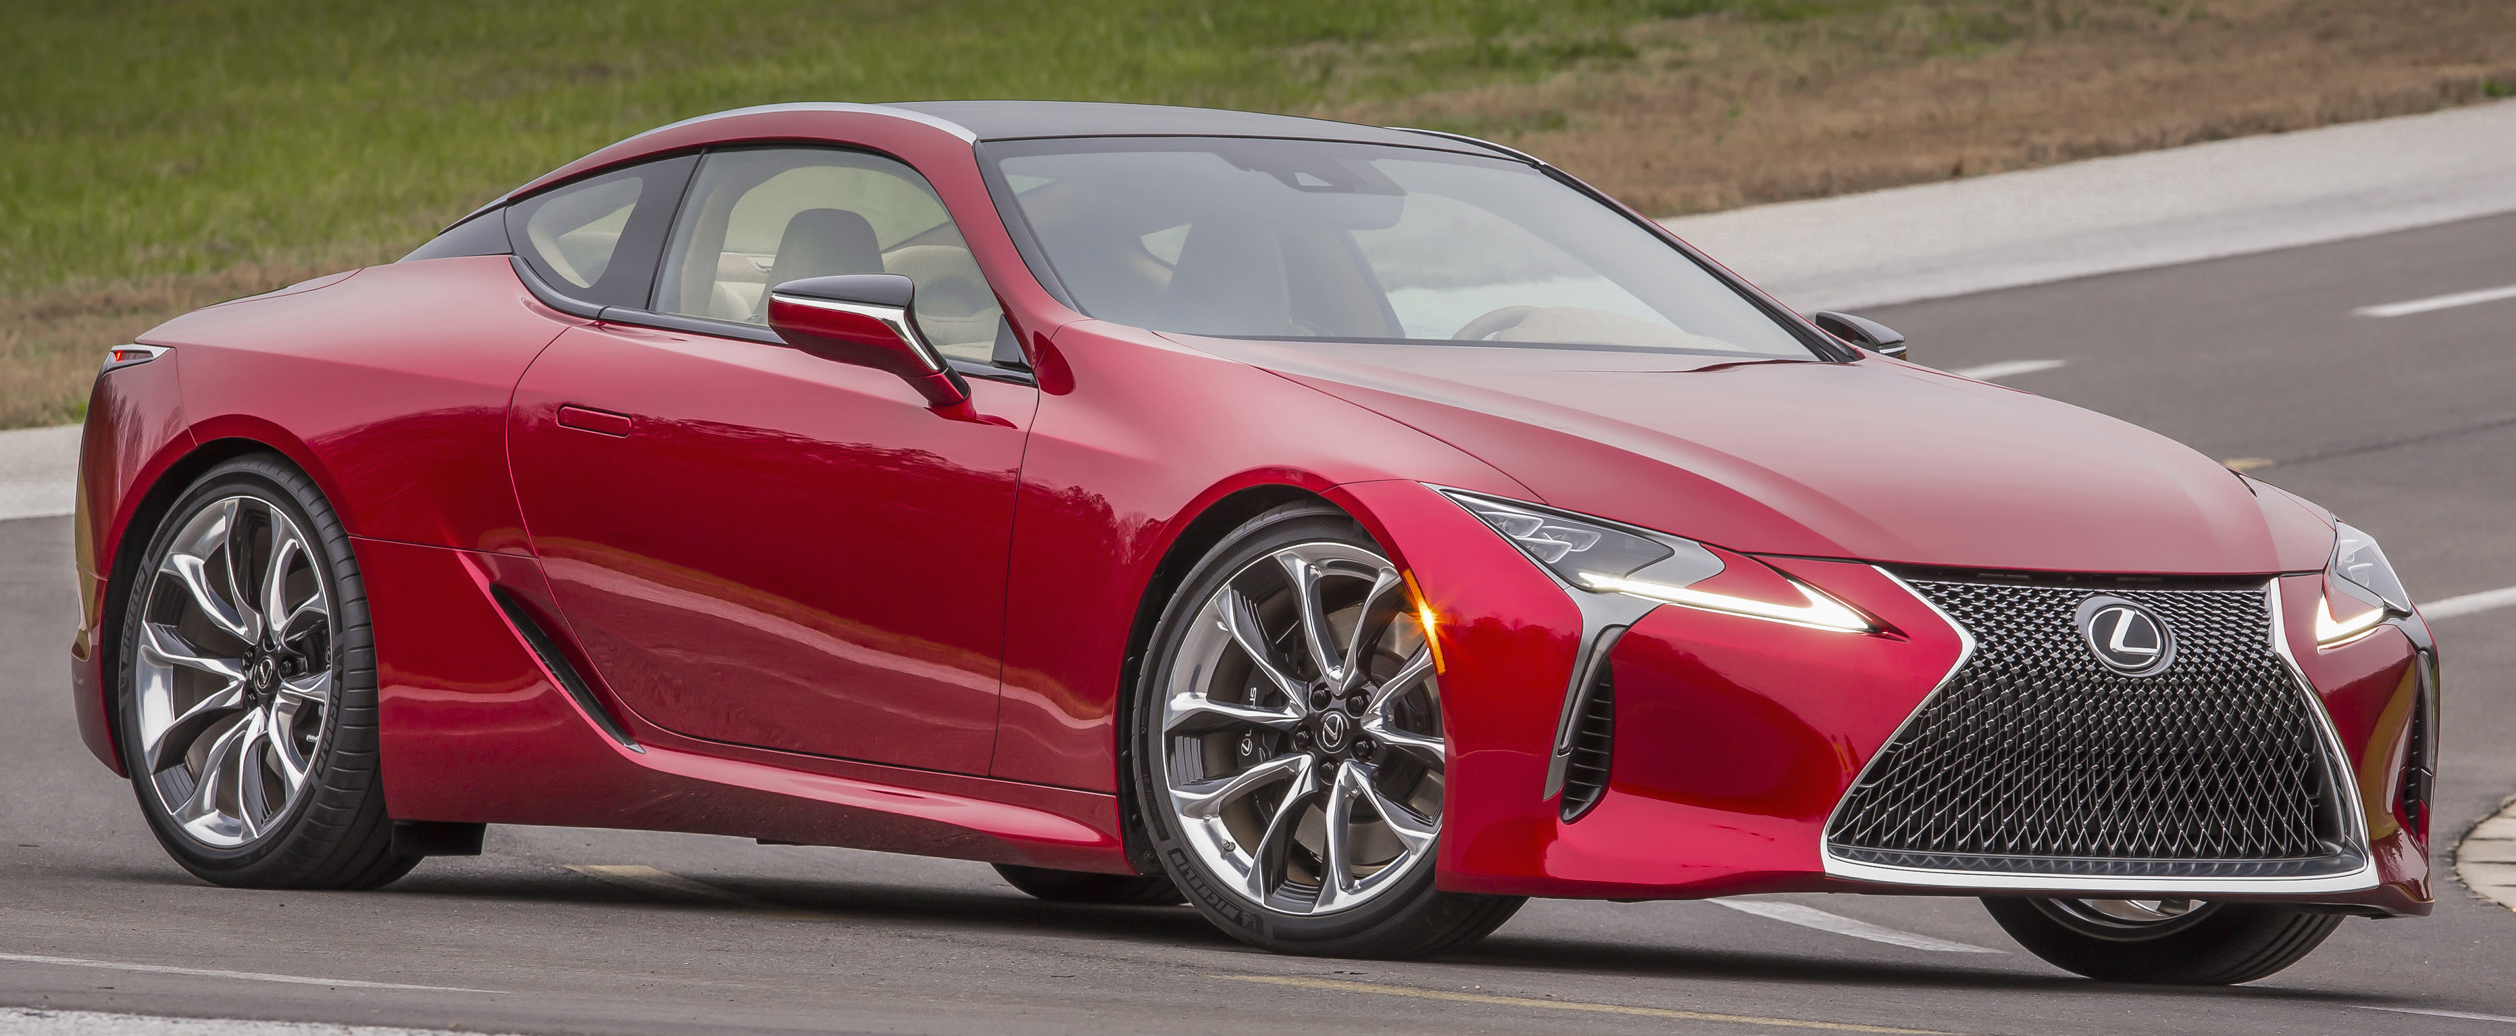 lexus banking on lc 500 to dispel boring image. Black Bedroom Furniture Sets. Home Design Ideas